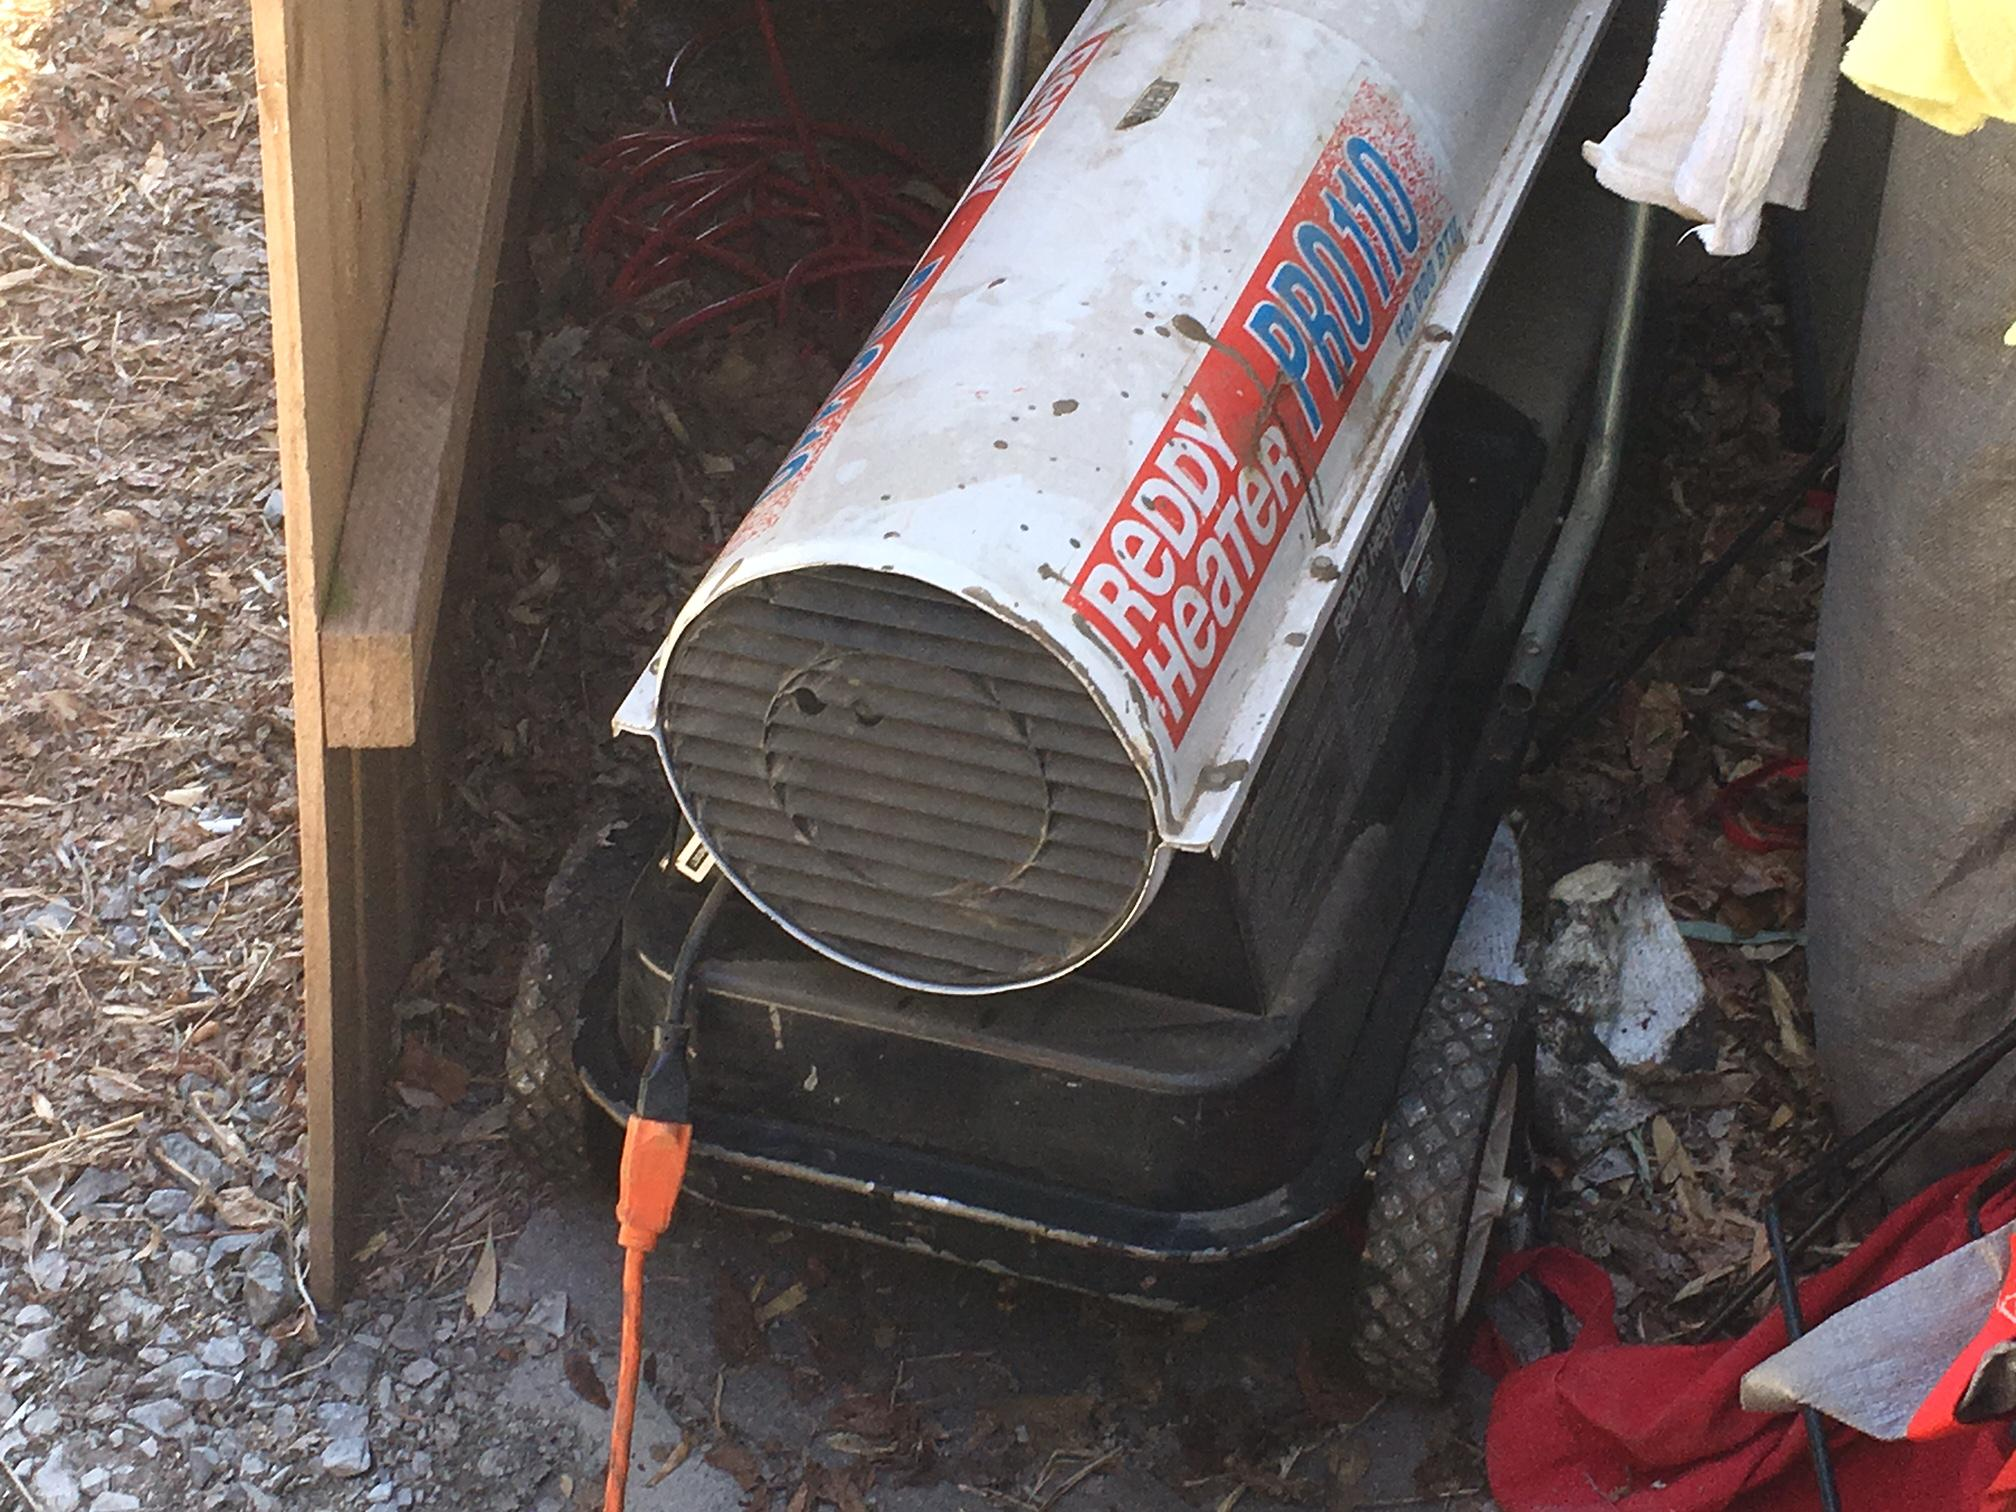 Many folks in the mountains woke up Tuesday morning to find their pipes had frozen as a result of frigid temperatures. John Dale of Western Carolina Plumbing offered some advice to keep in mind during times of cold weather. (Photo credit: WLOS Staff)